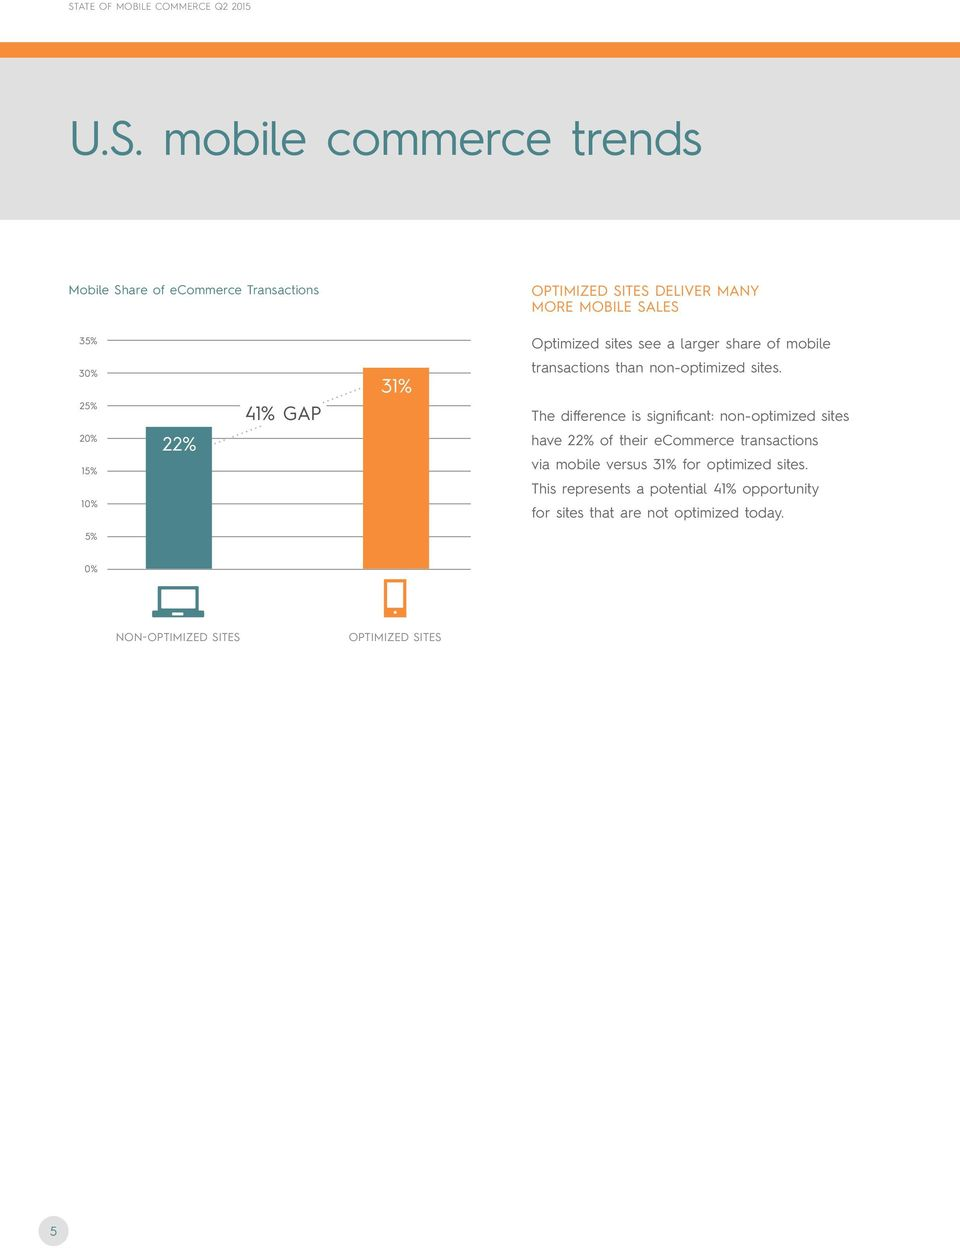 The difference is significant: non-optimized sites 20% 15% 10% 22% have 22% of their ecommerce transactions via mobile